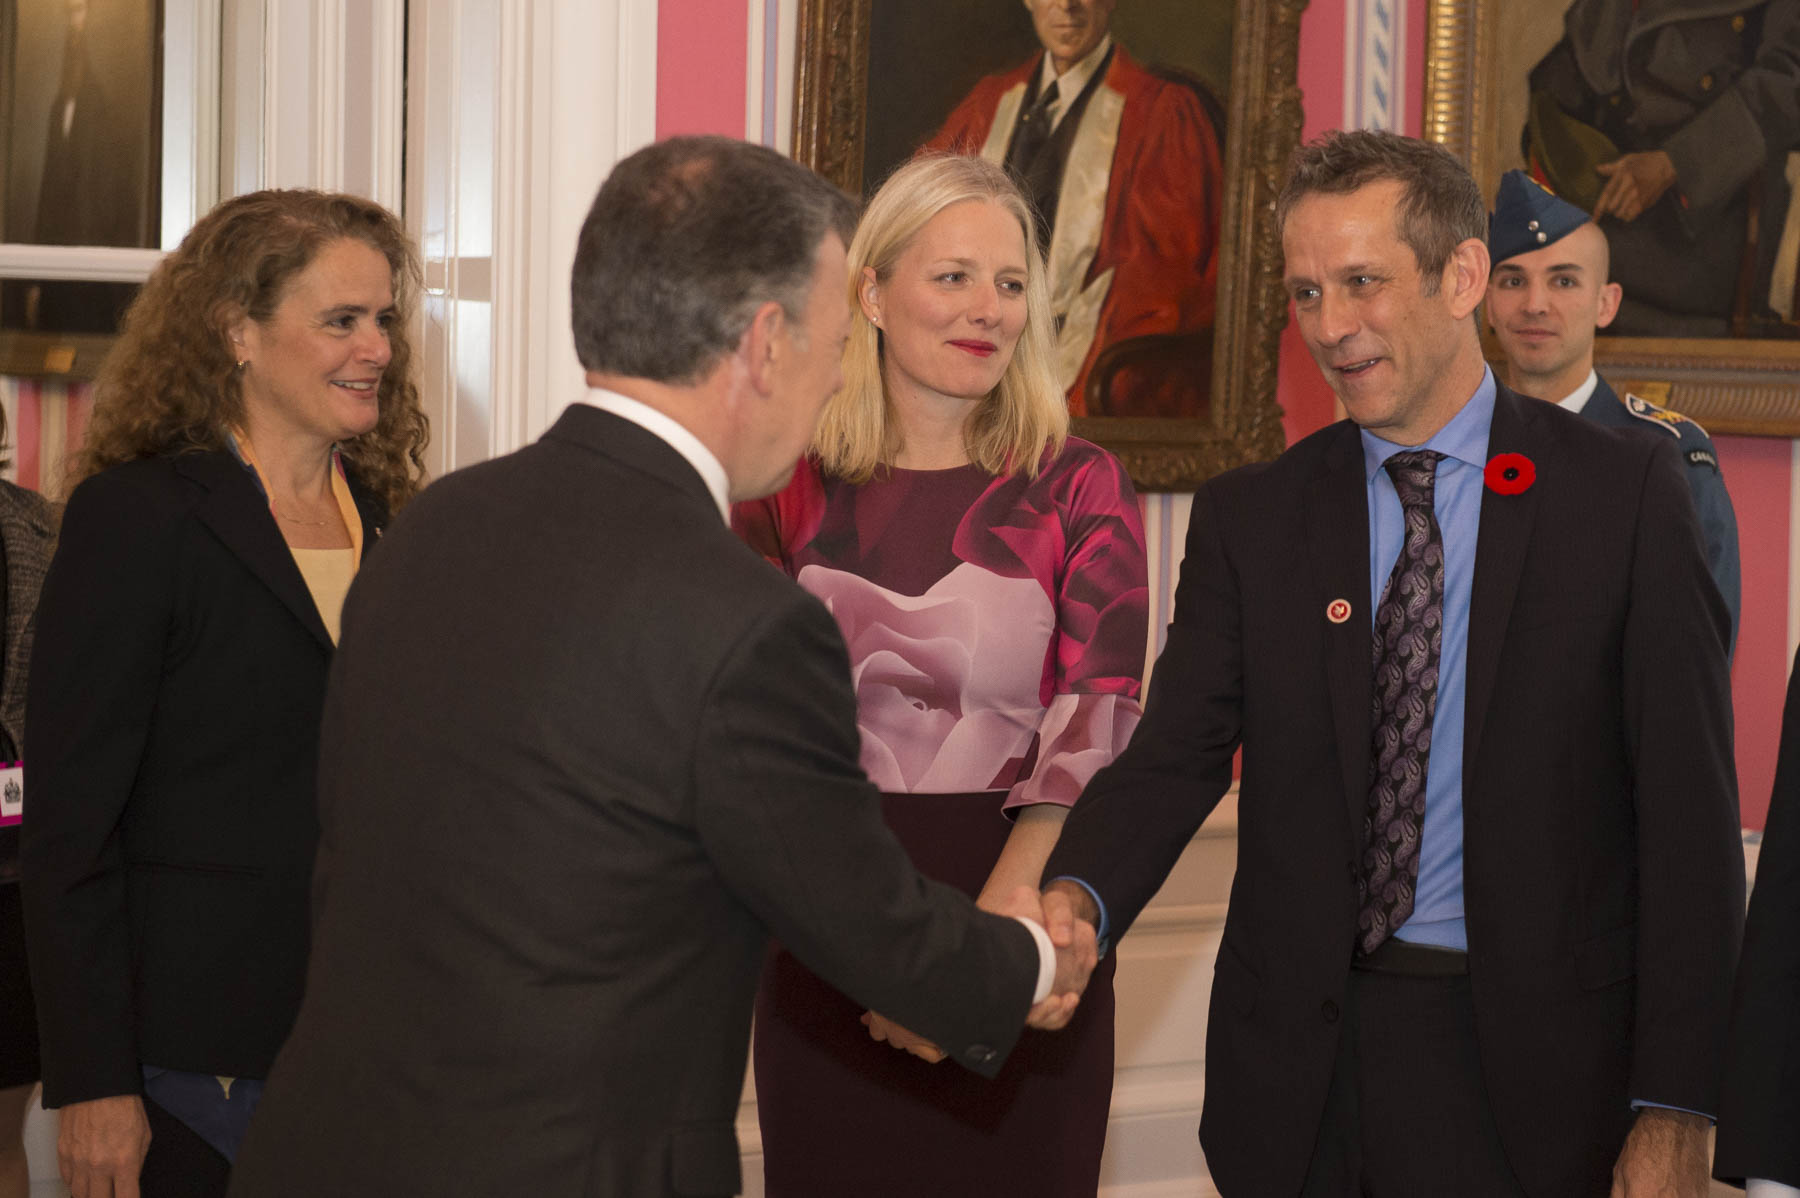 President Santos was introduced to members of the Canadian delegation.